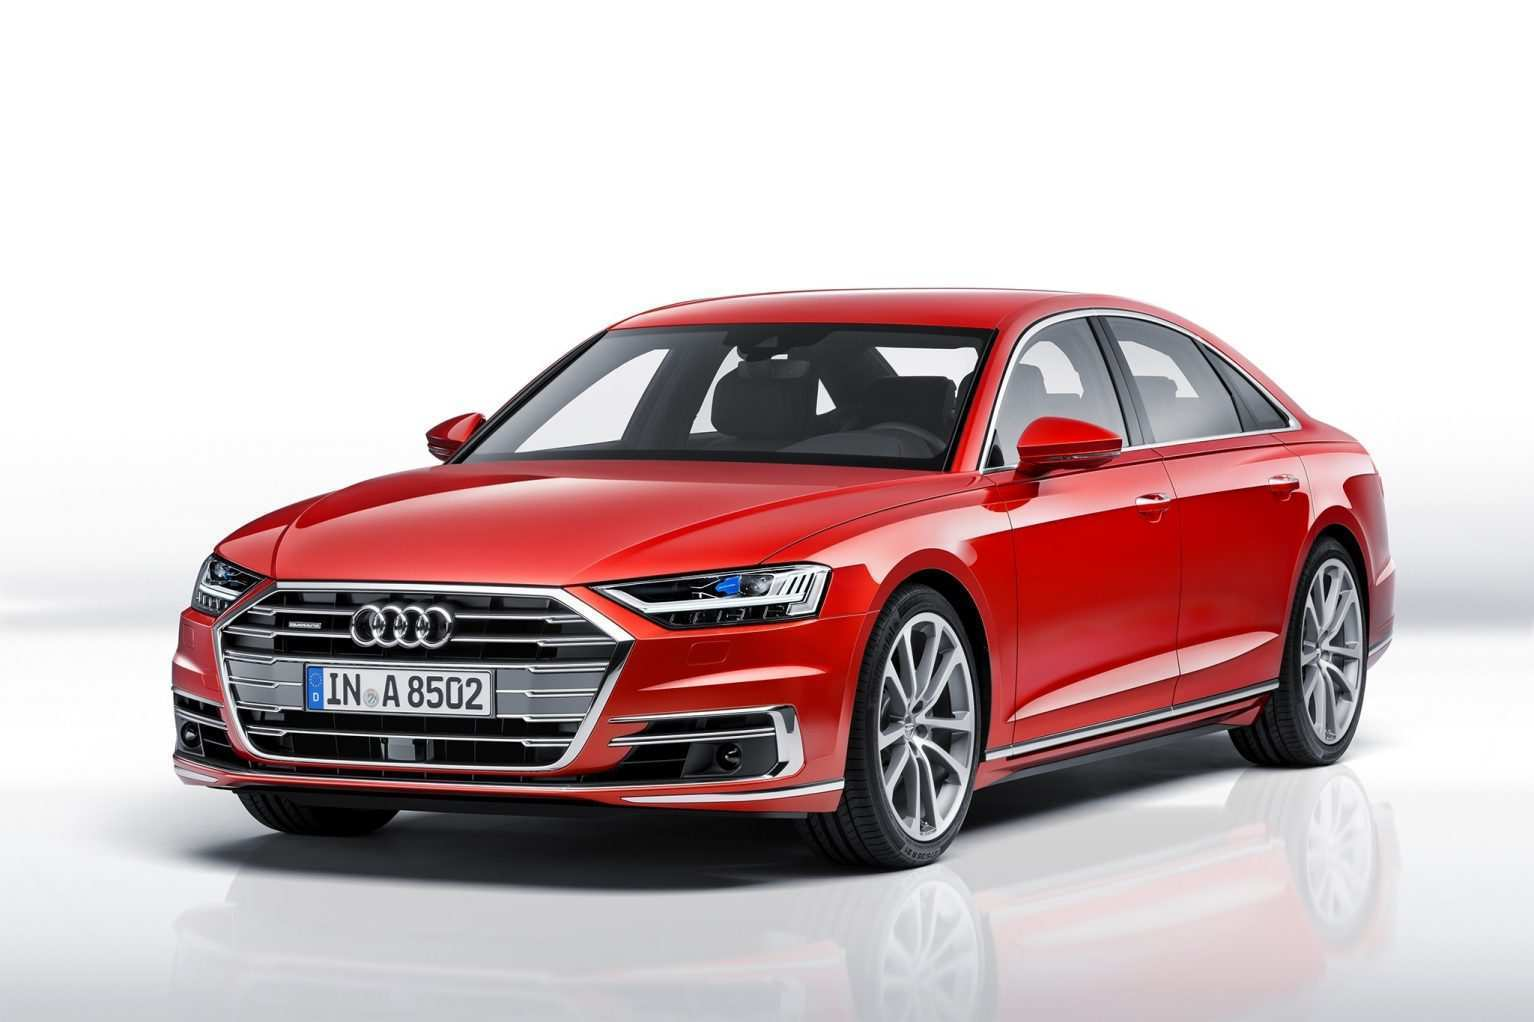 89 Concept of The Audi A6 2019 Launch Date Review Model by The Audi A6 2019 Launch Date Review